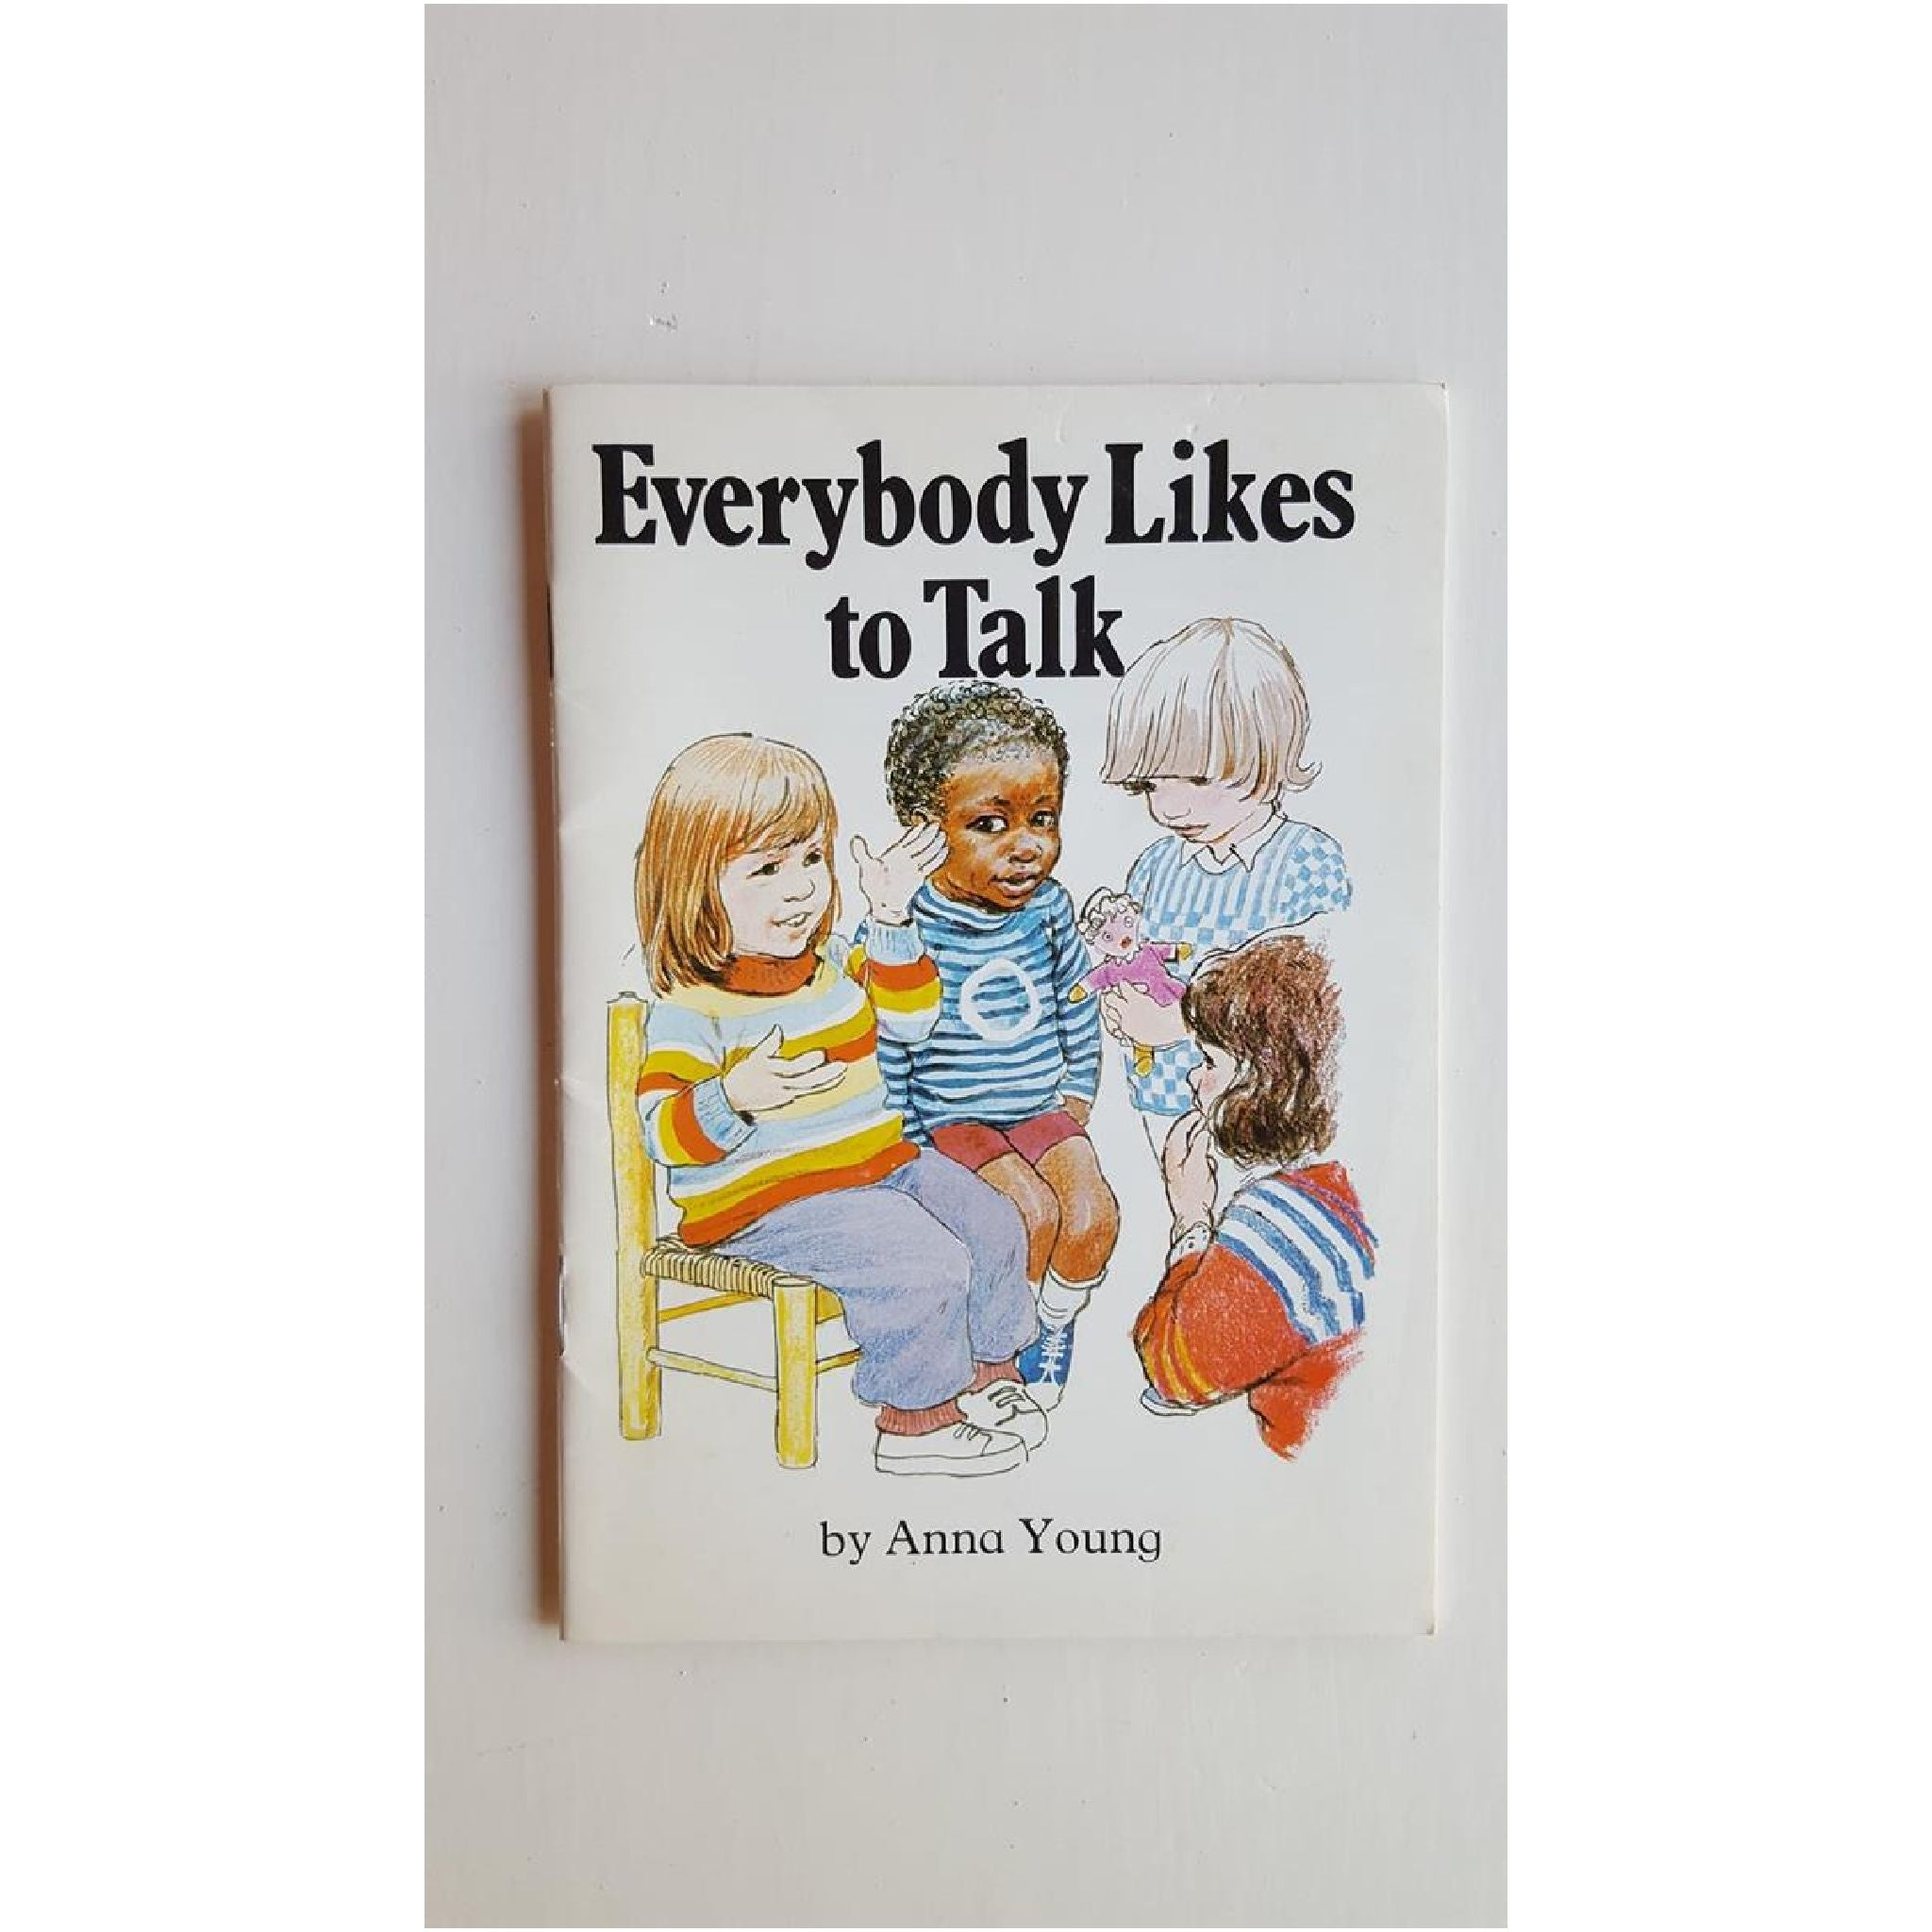 Everybody Likes to Talk by Anna Young